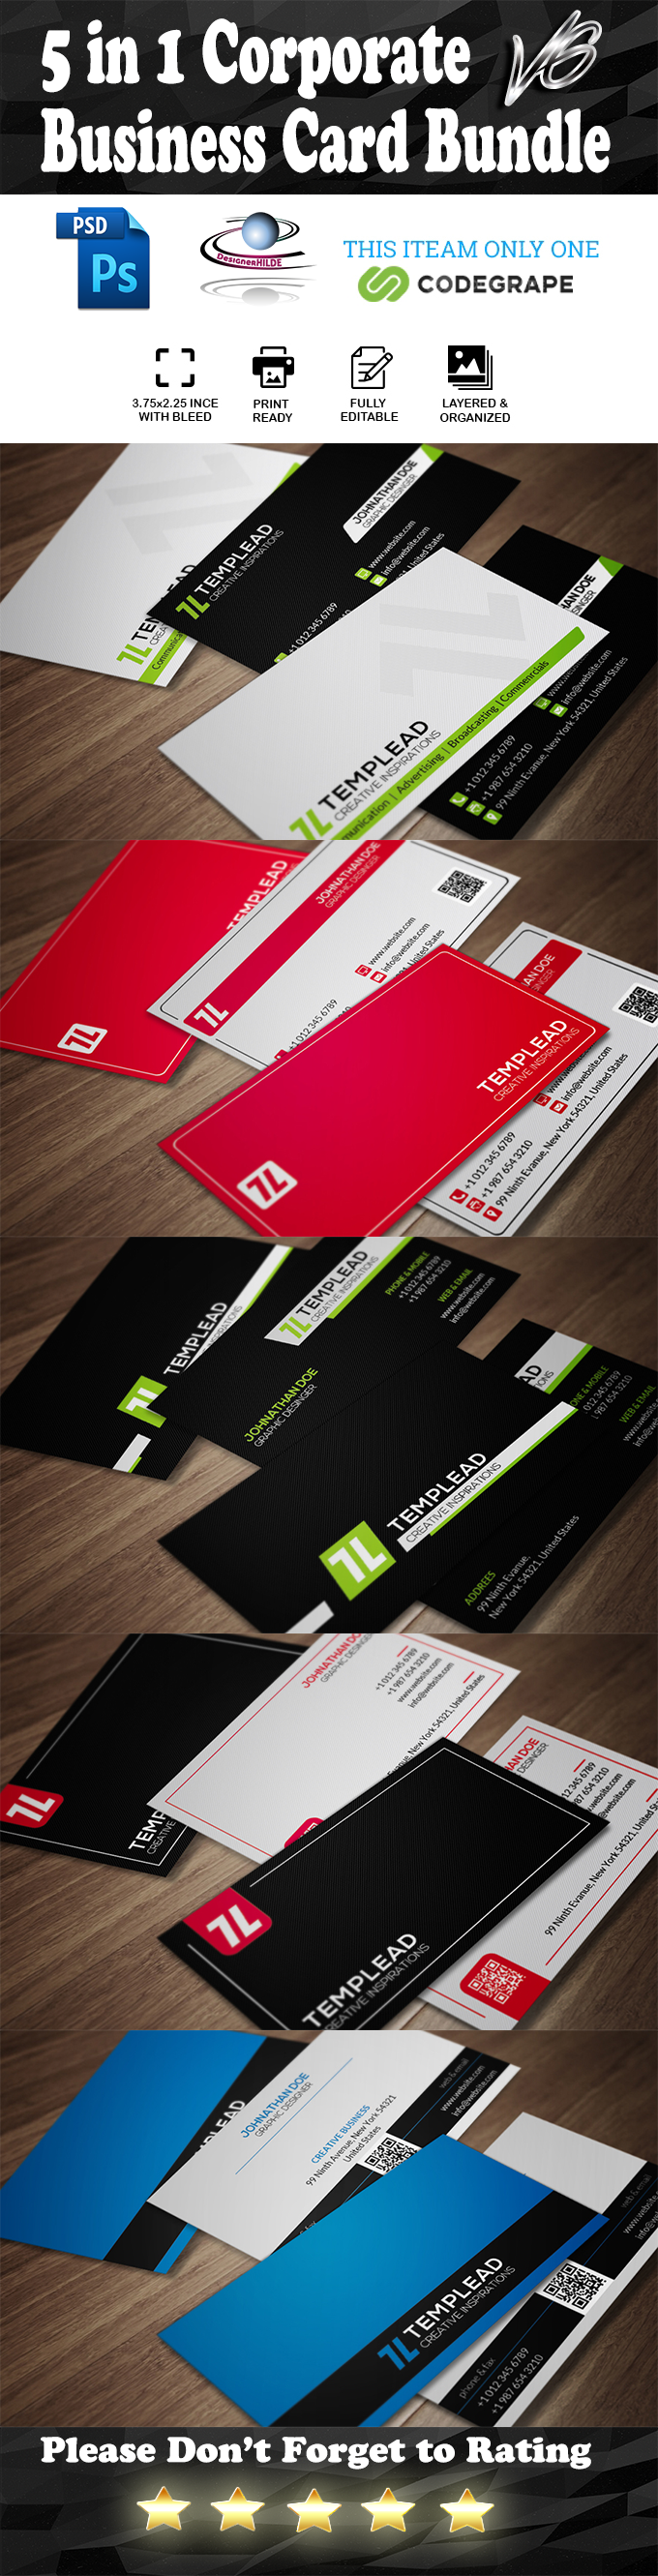 5 in 1 Corporate Business Card Bundle v6